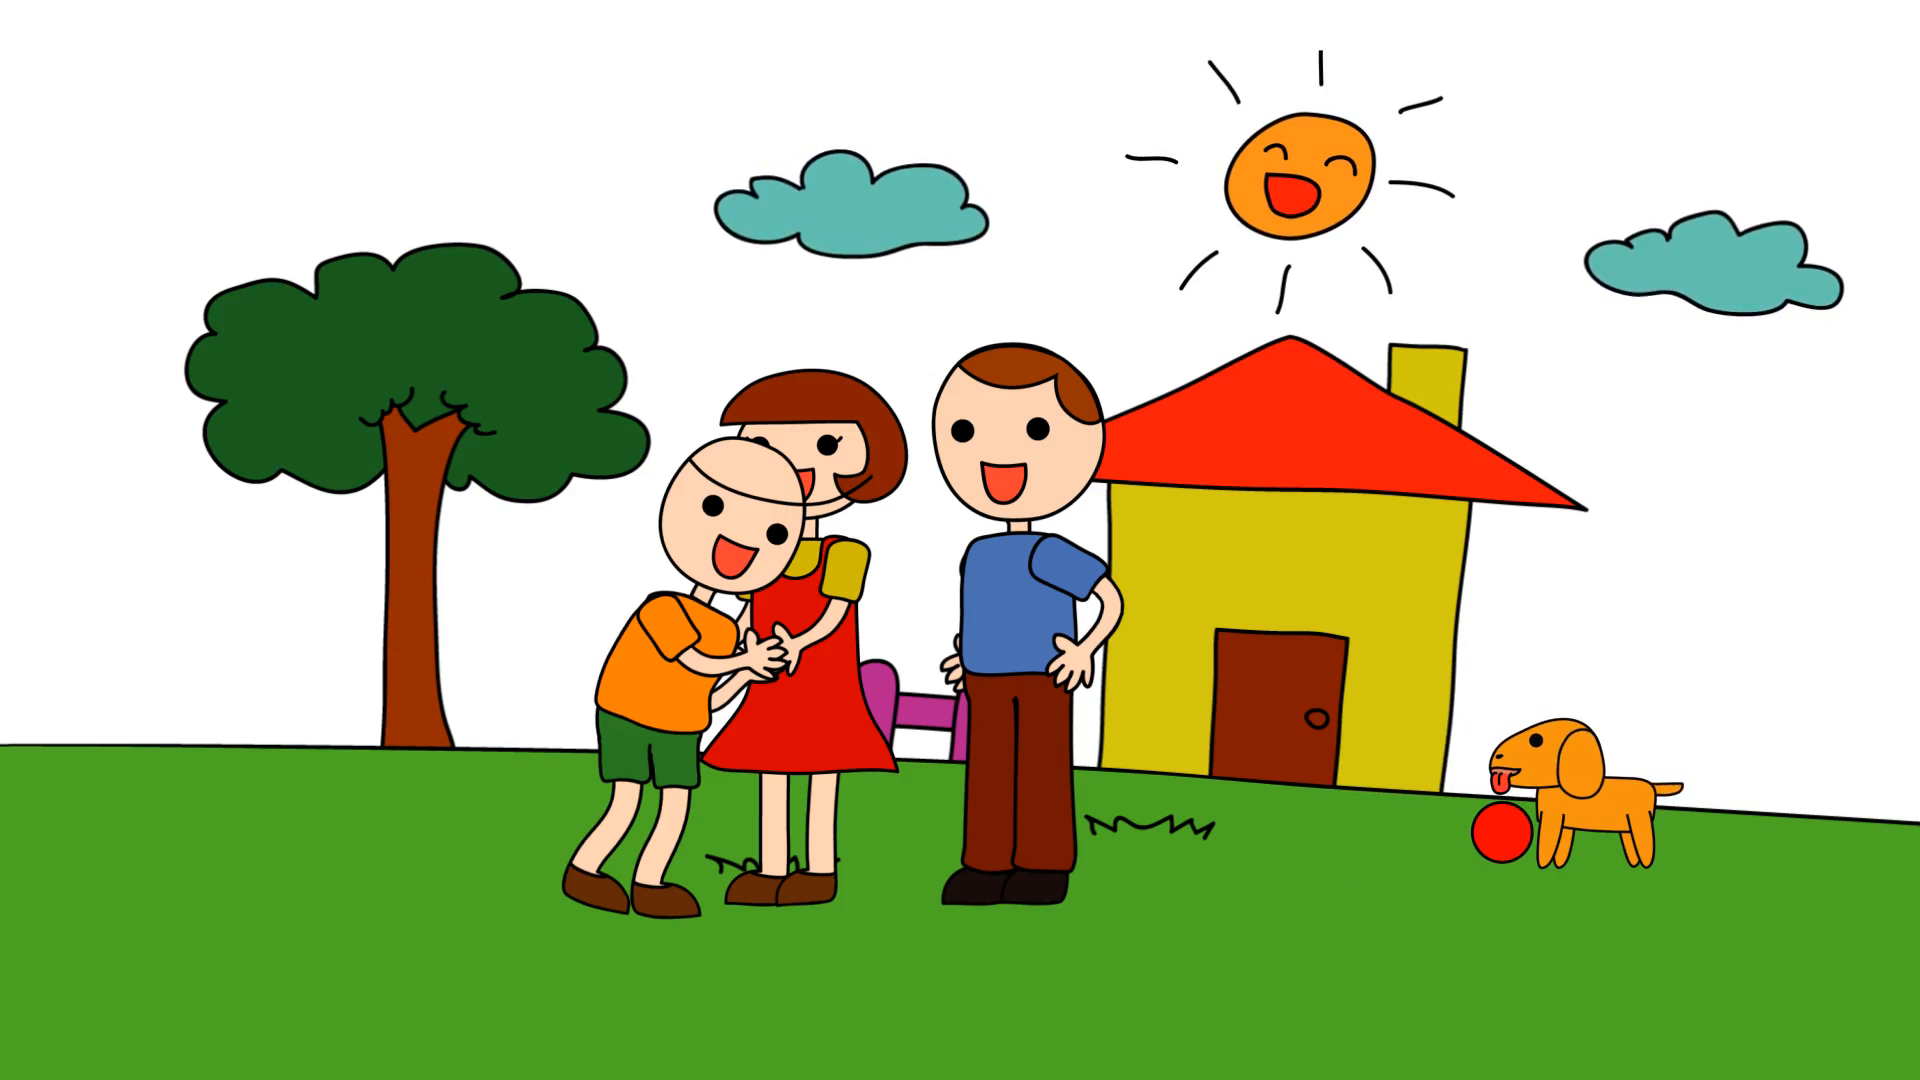 1920x1080 Animation Cartoon Of A Kindergarten Drawing Of A Child In A Happy